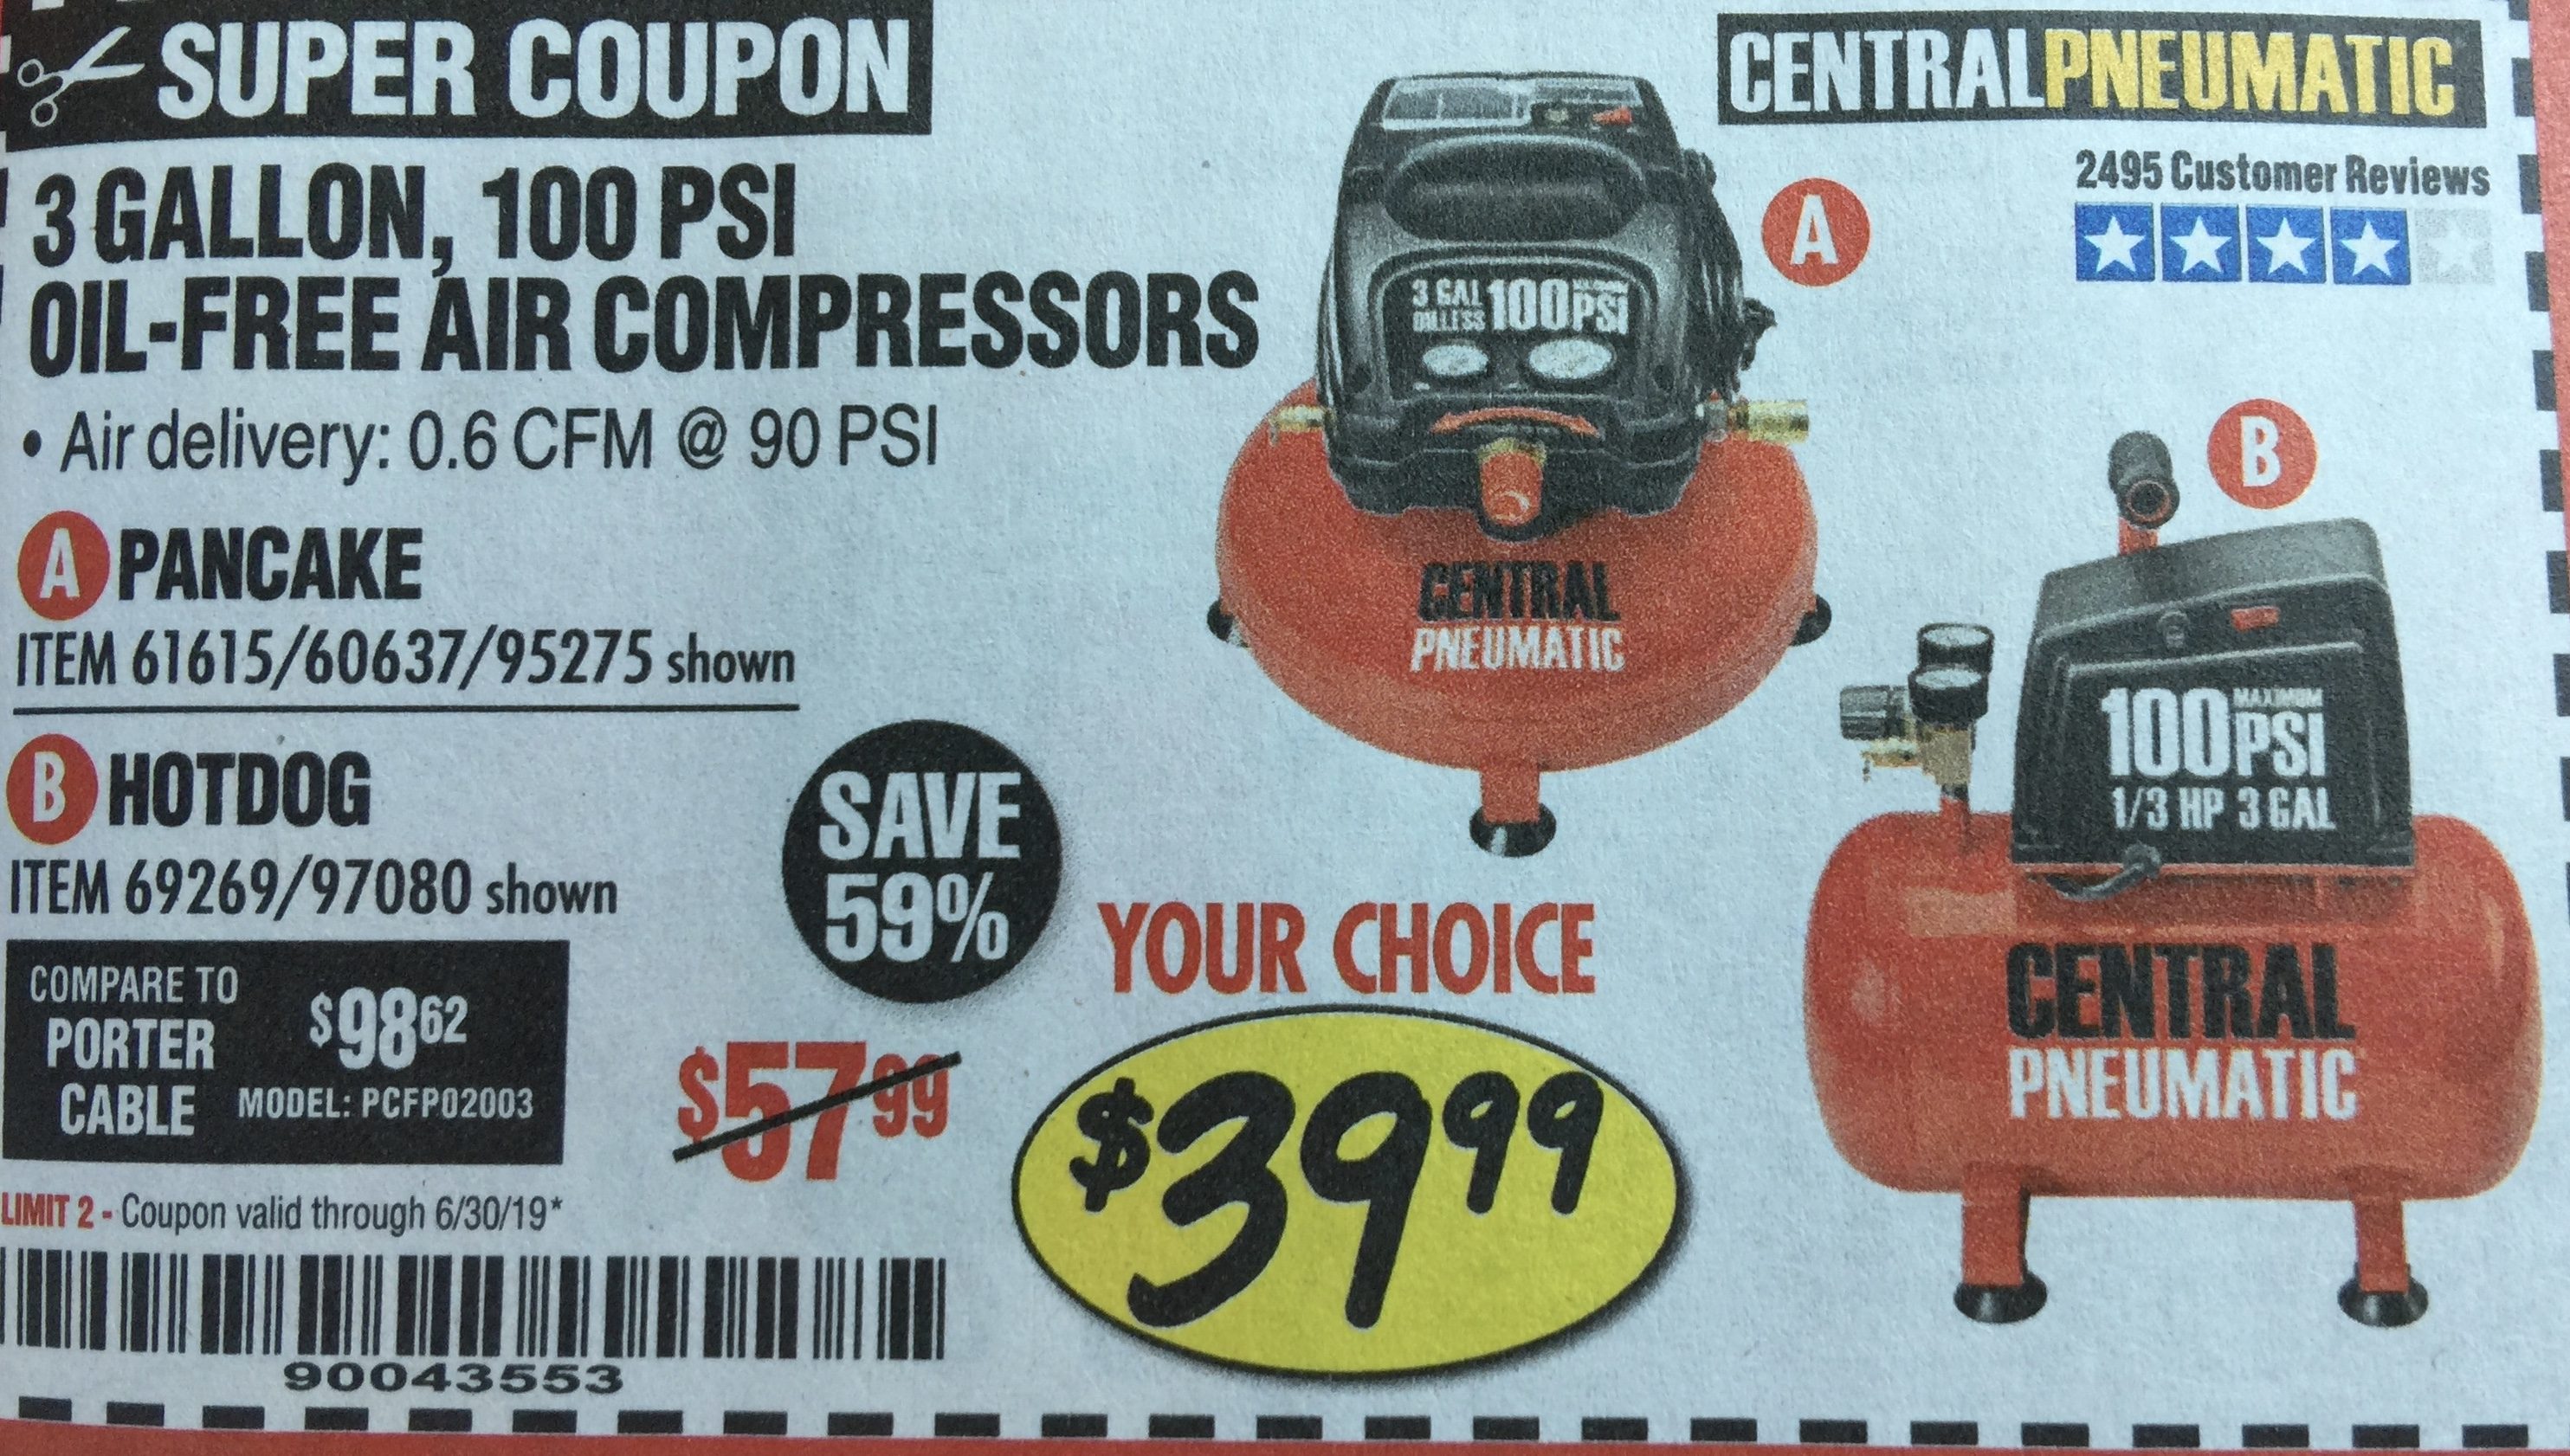 Harbor Freight 3 GAL. 1/3 HP 100 PSI OIL-FREE HOTDOG AIR COMPRESSOR coupon